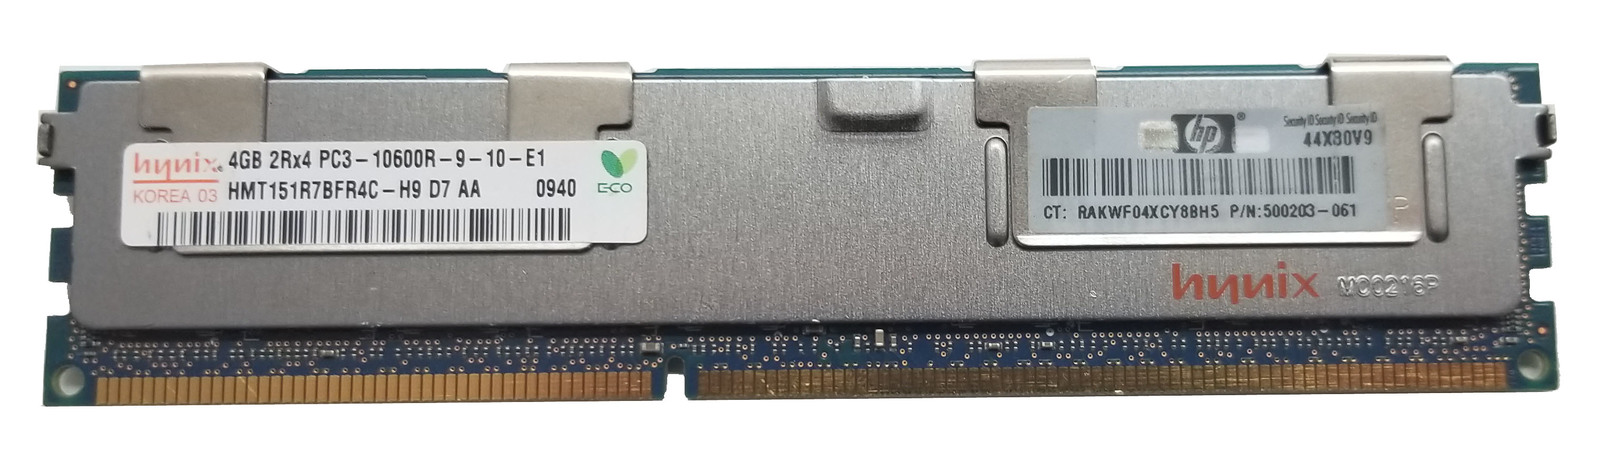 Hynix 4GB 2Rx4 PC3-10600R Server RAM (HMT151R7TFR4C-H9) Bin:12